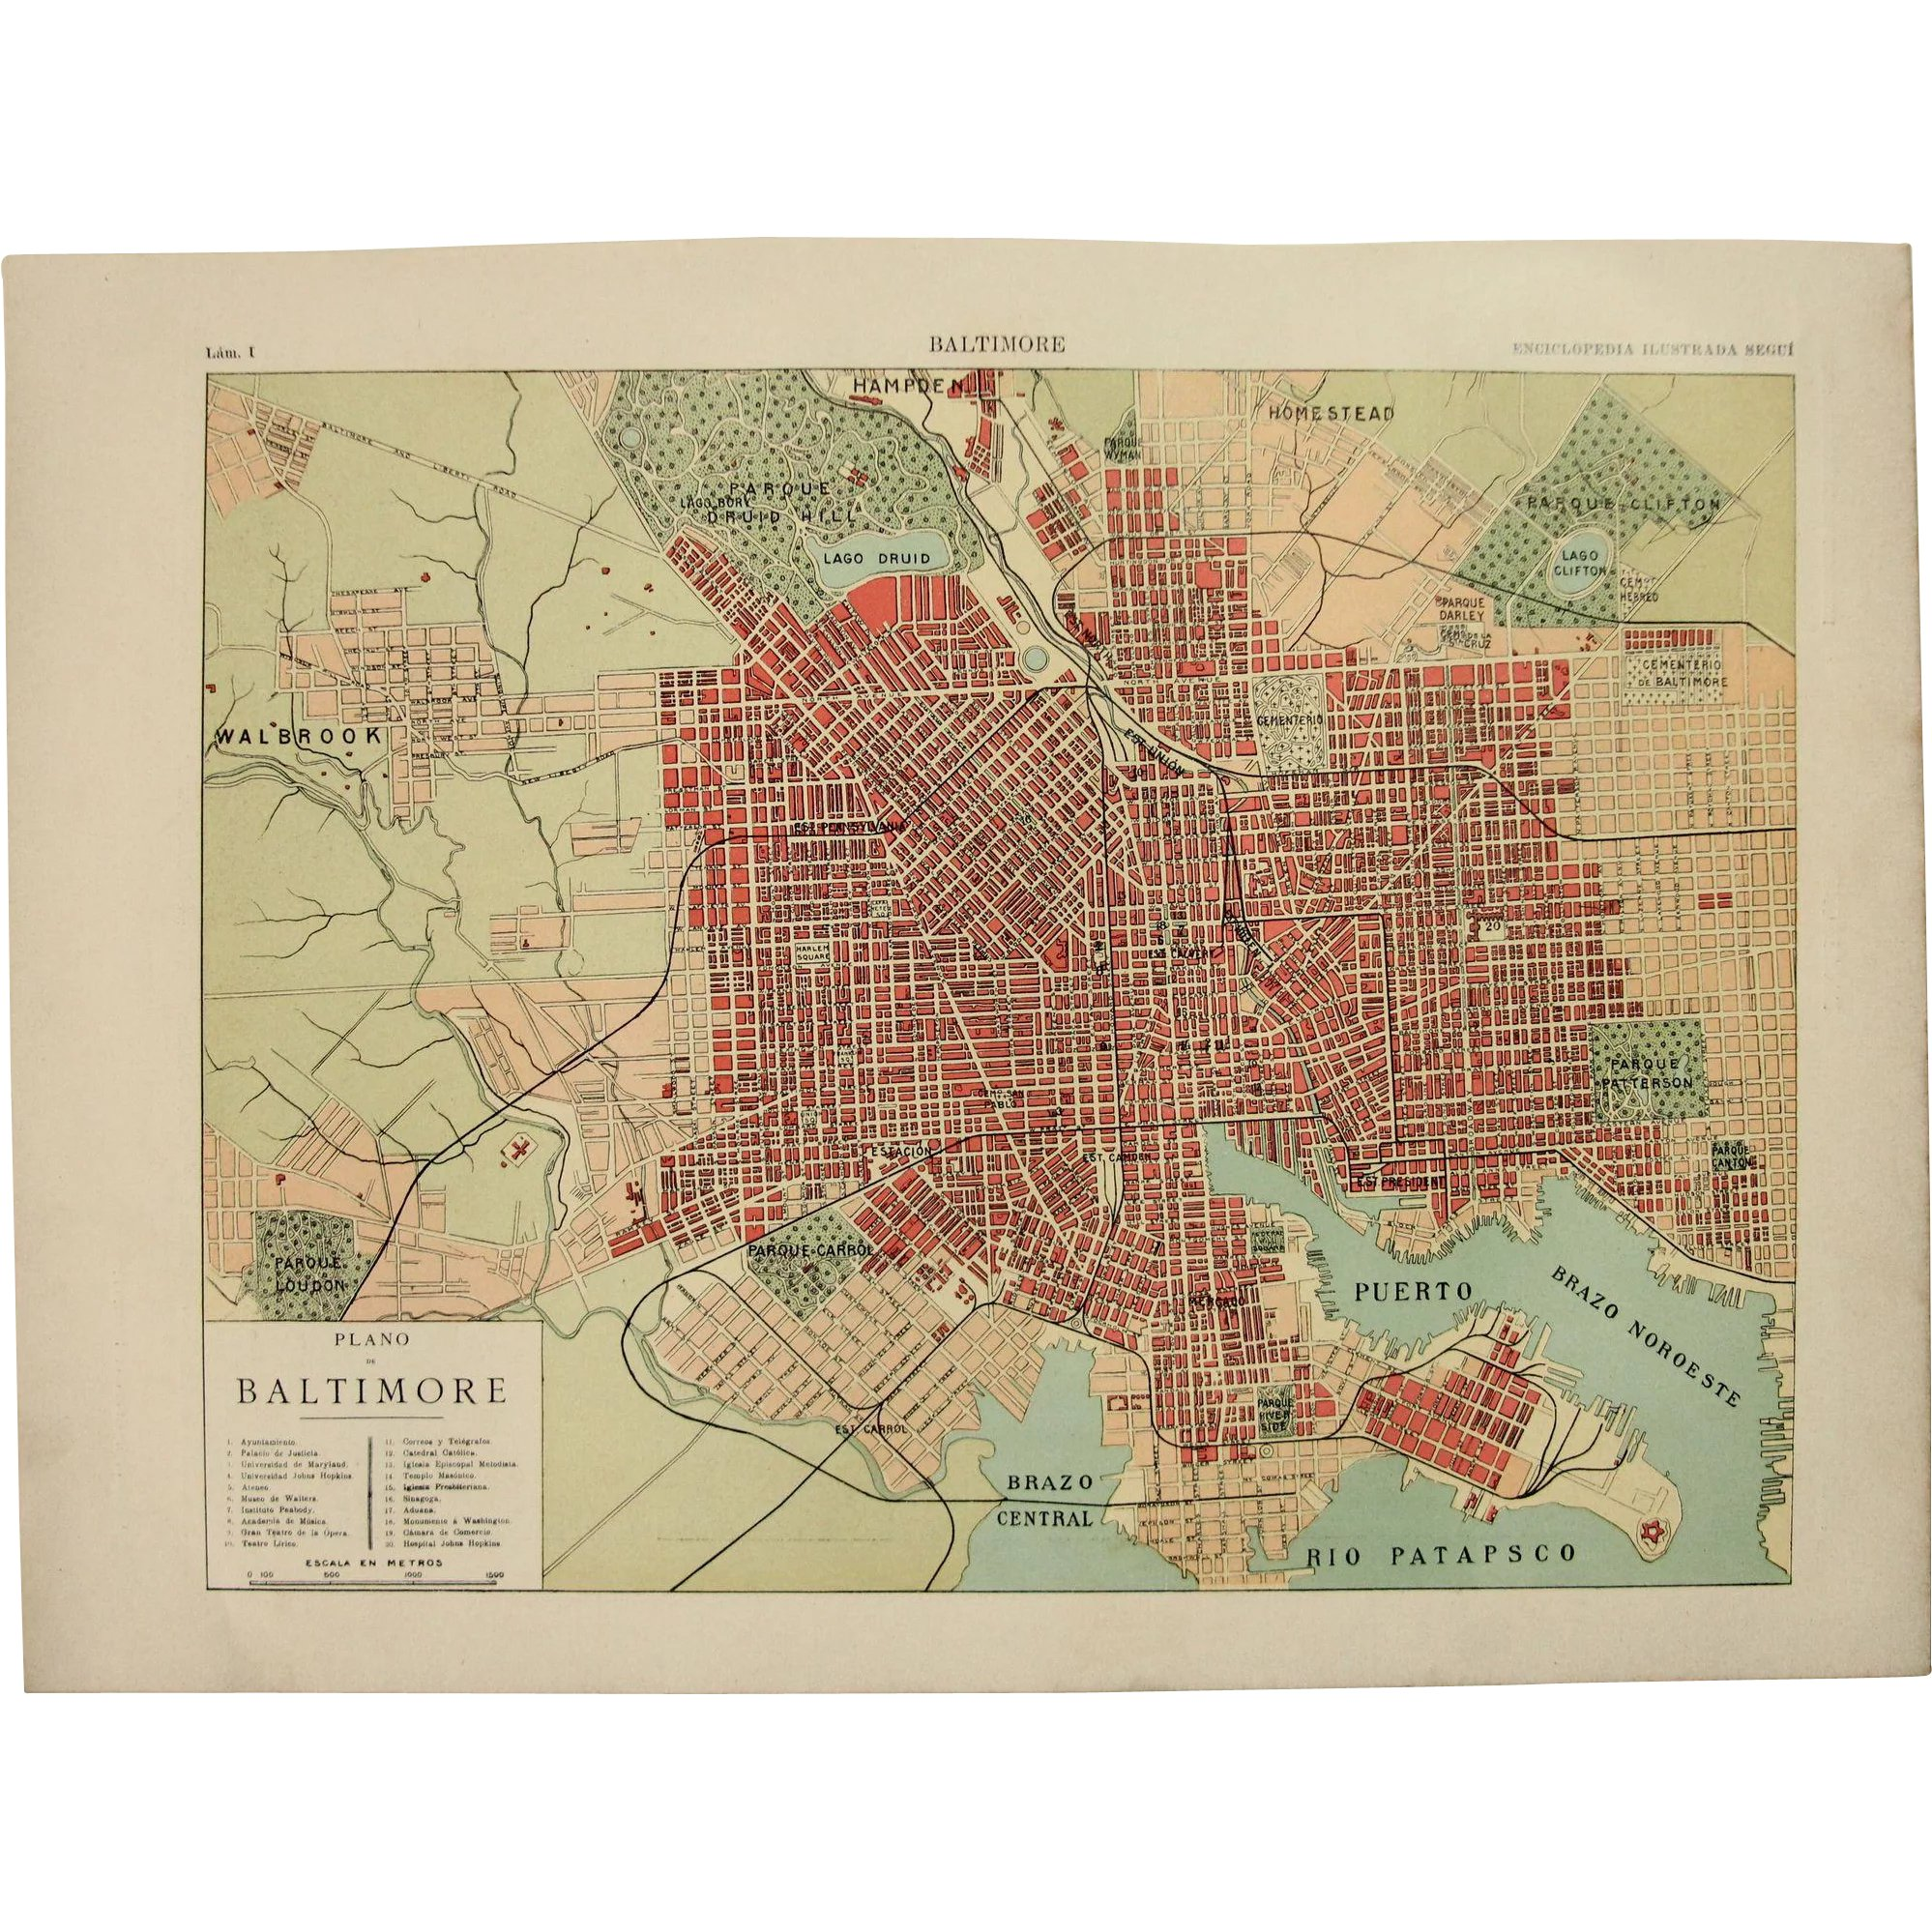 Art nouveau map of baltimore including train lines photos of art nouveau map of baltimore including train lines photos of sights vianova ruby lane gumiabroncs Choice Image